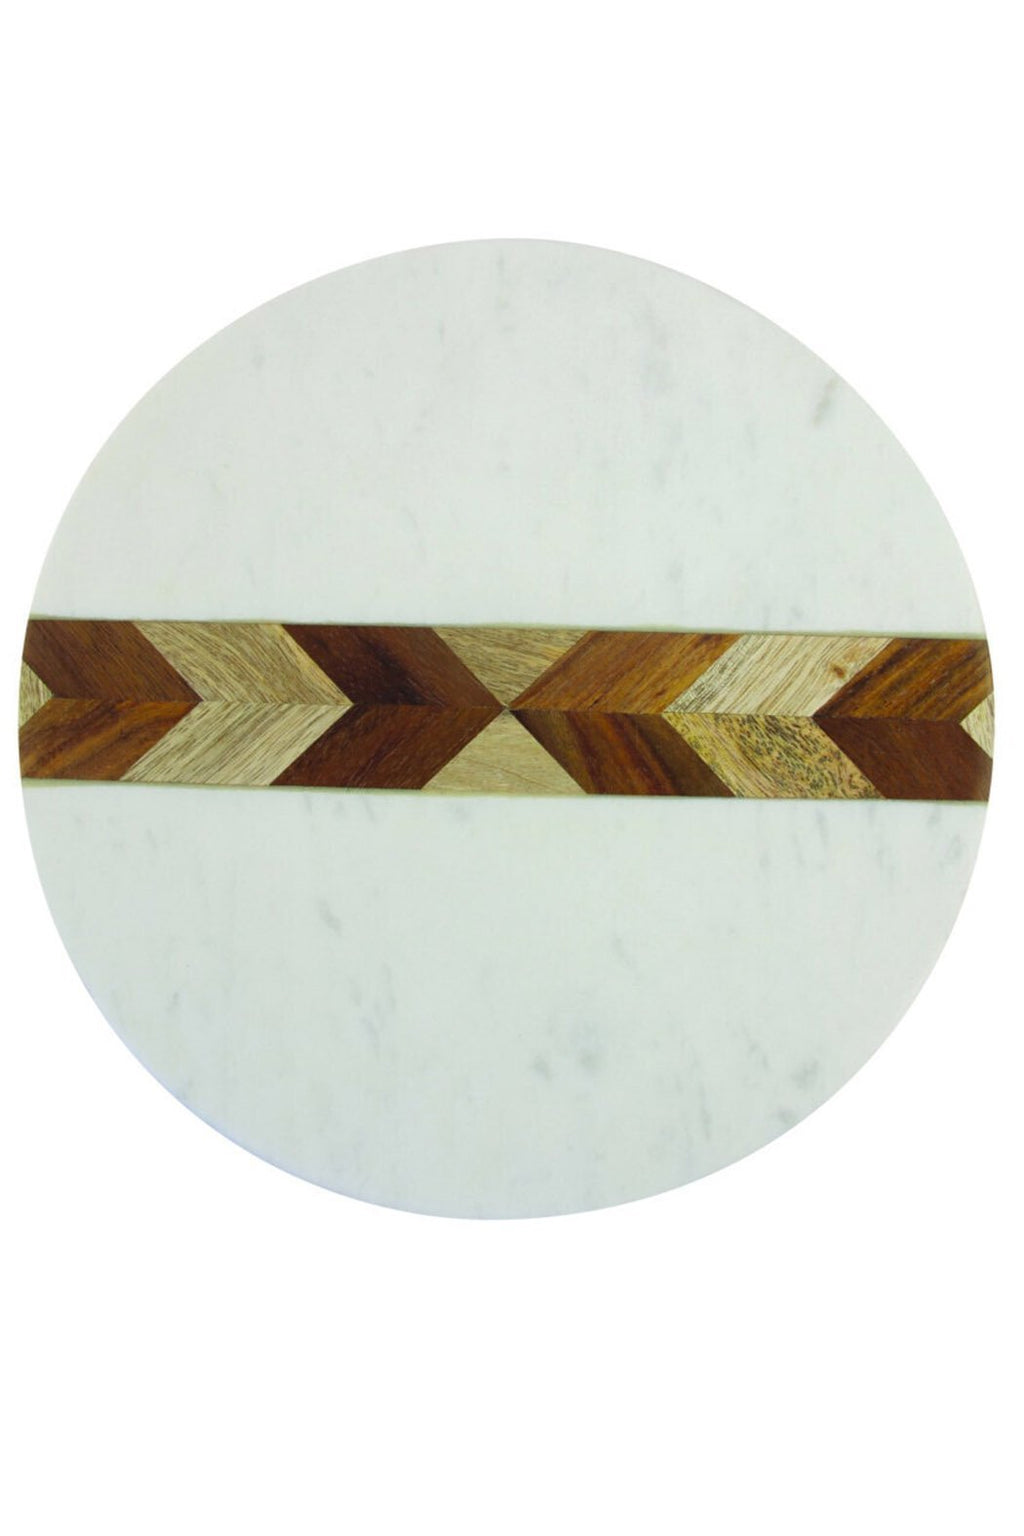 Be Home White Marble + Wood Mosaic Round Board